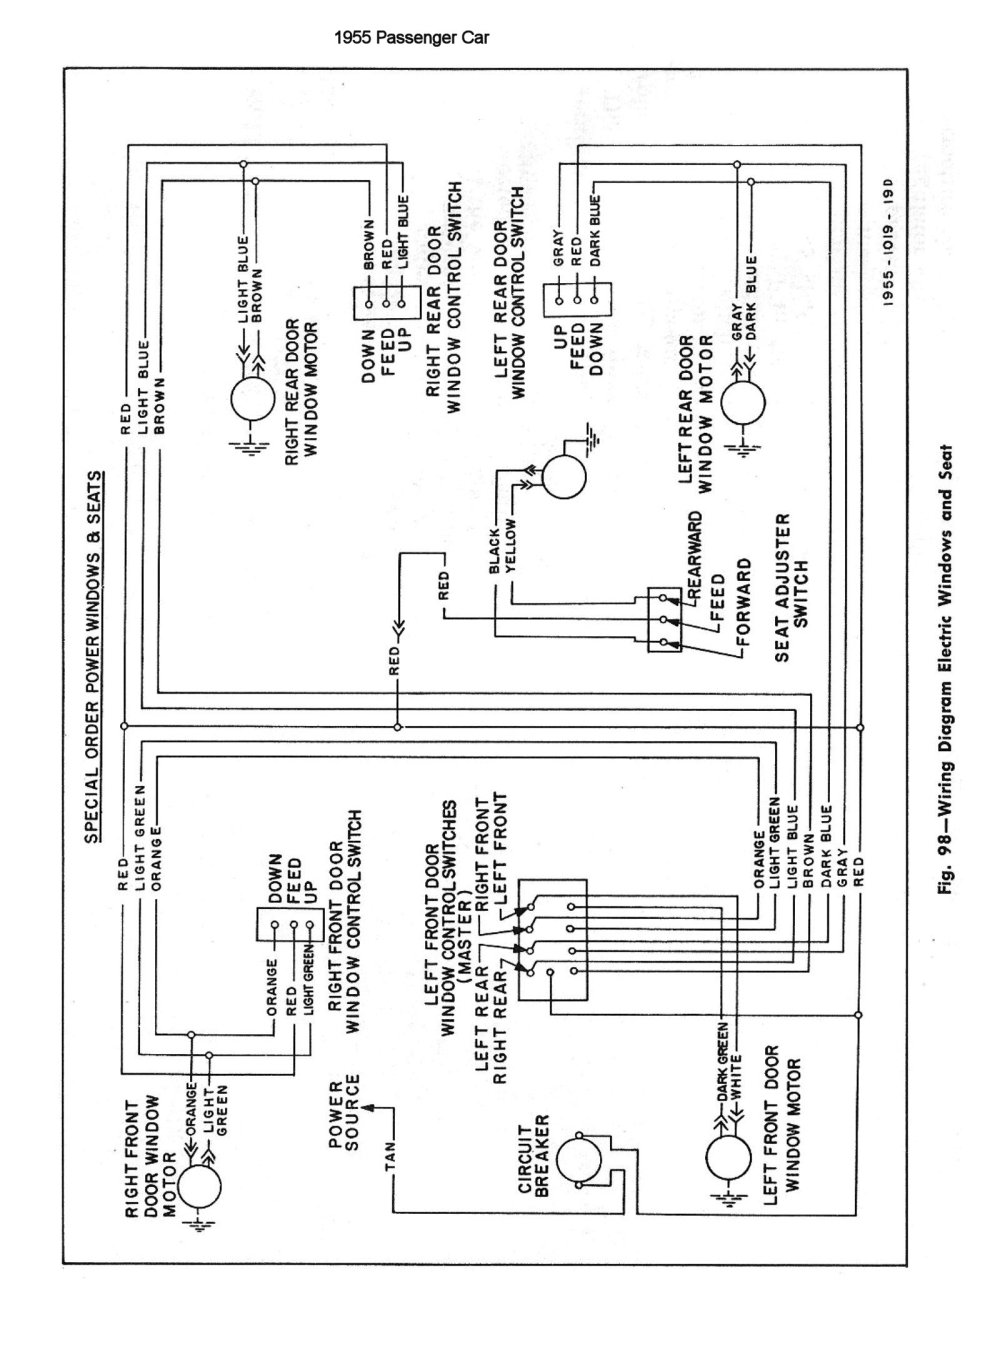 medium resolution of 1962 cadillac headlight switch wiring wiring diagram technic1962 cadillac headlight switch wiring